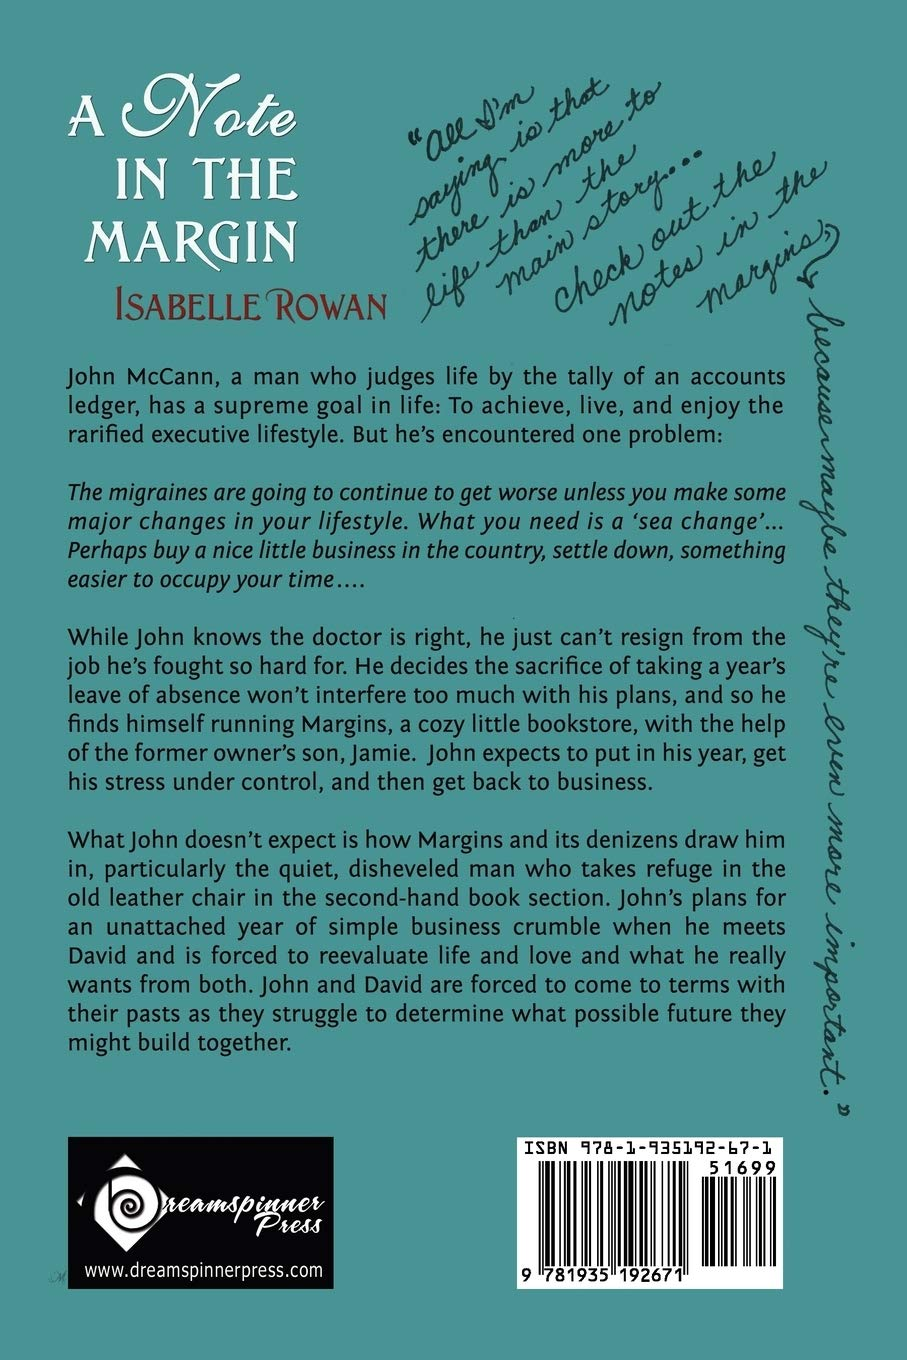 Amazon Com A Note In The Margin A Note In The Margin And Twelve Days 9781935192671 Rowan Isabelle Books